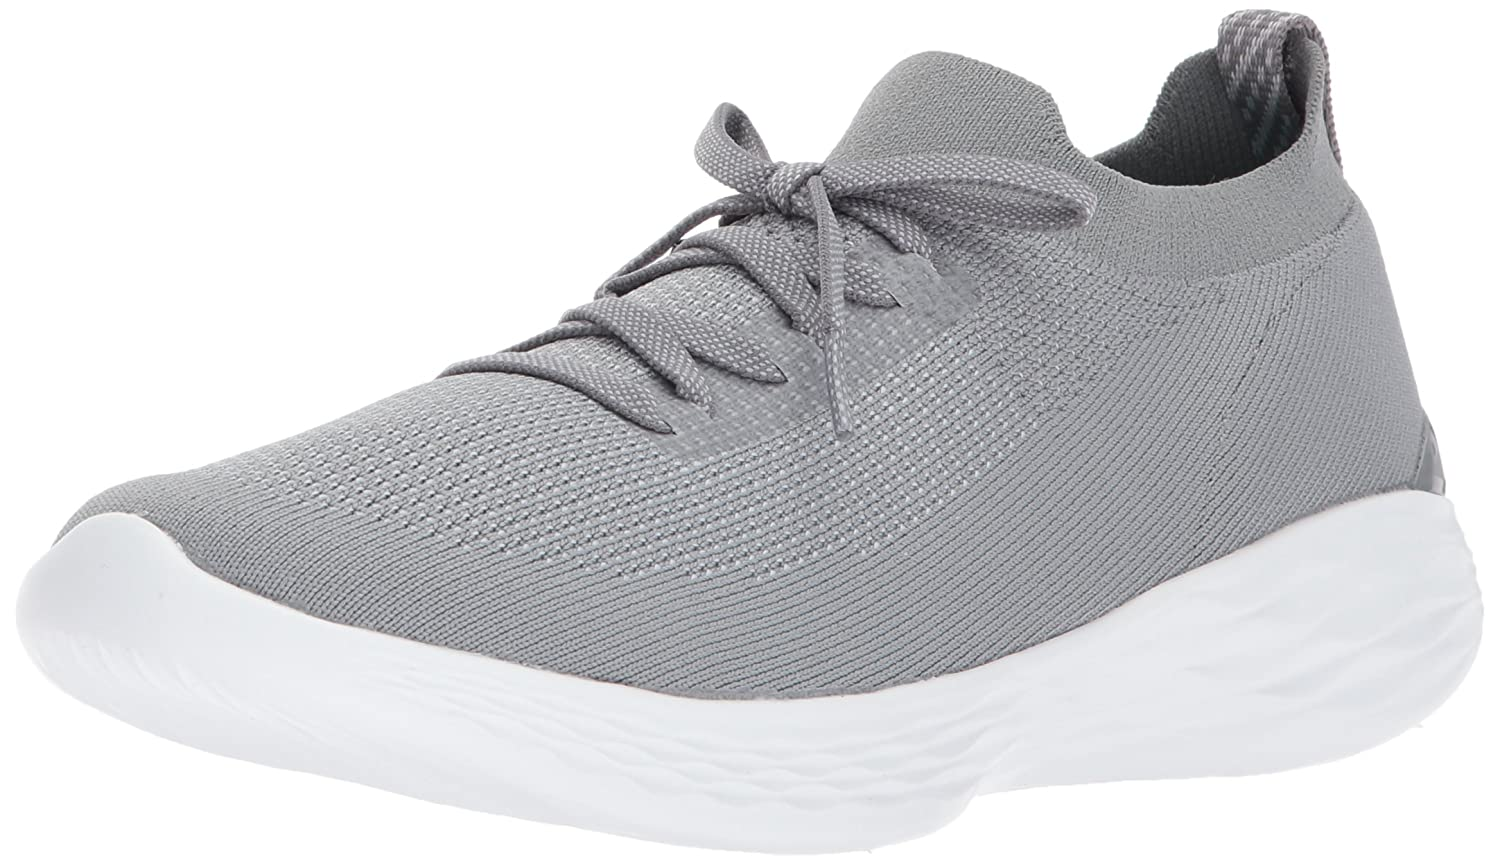 Skechers Damen You-Shine Slip On Turnschuhe